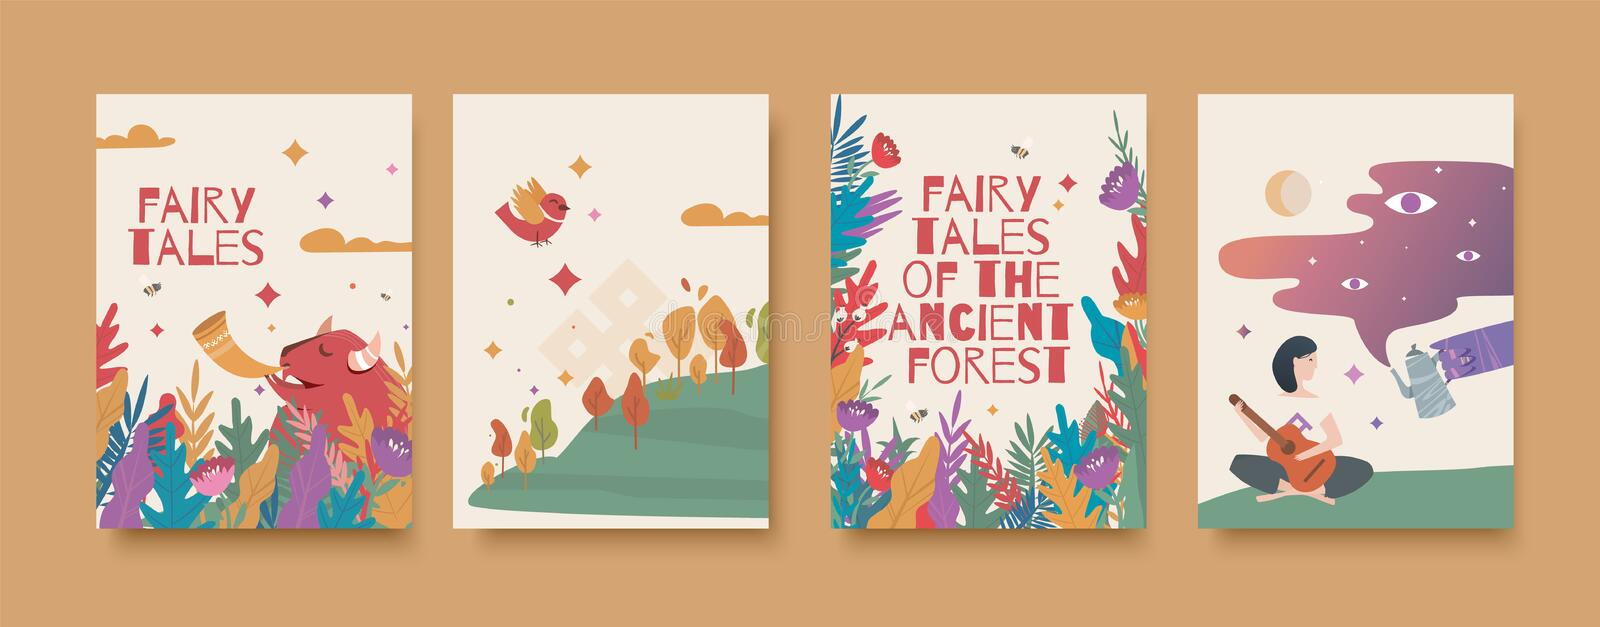 Set of illustrations for the book of fairy tales about the ancient forest. Fairy tales of the ancient forest card set vector illustration